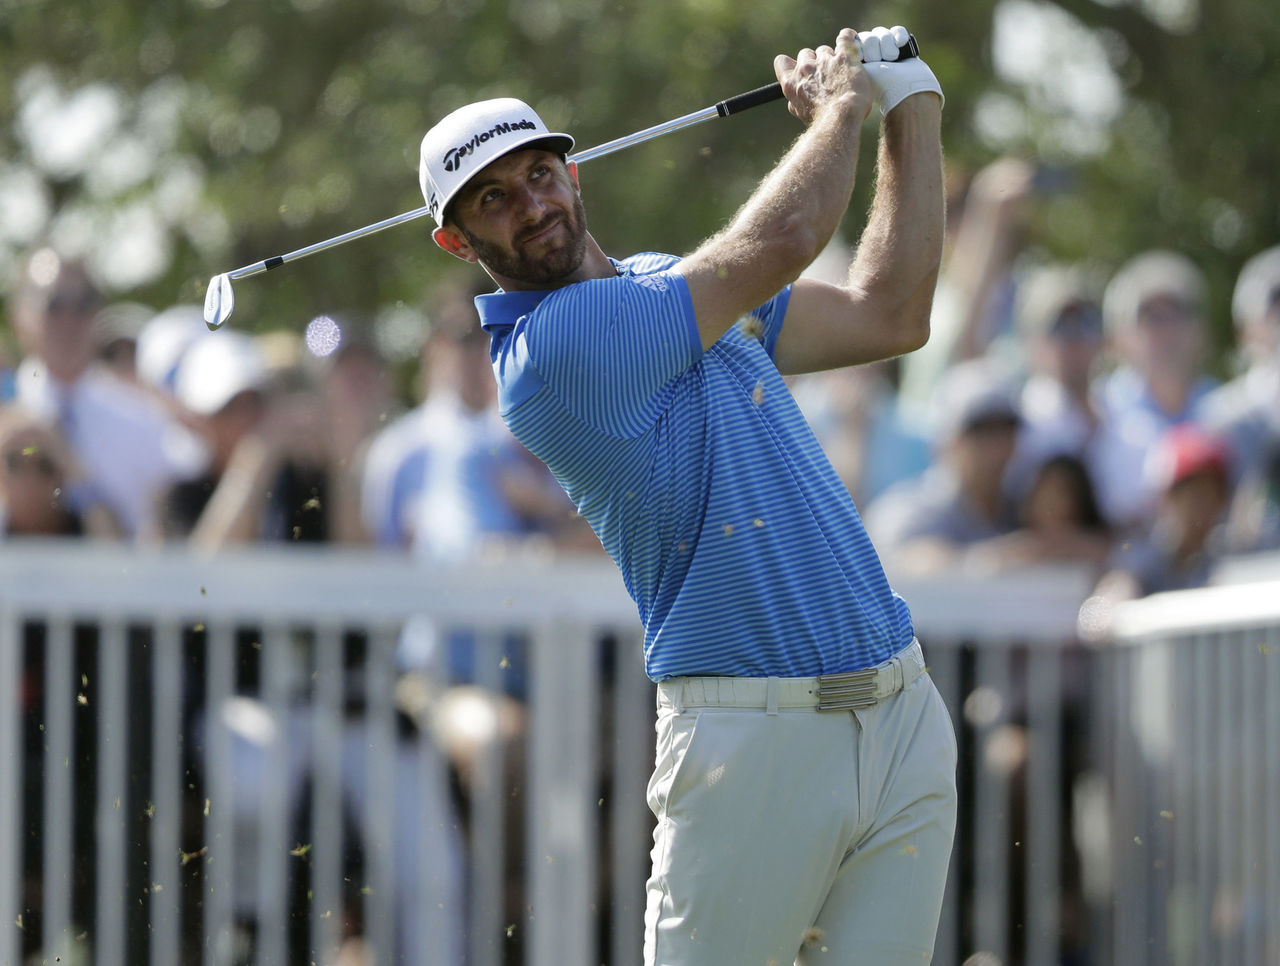 Cropped 2017 03 26t160848z 607467082 nocid rtrmadp 3 pga wgc dell match play final round